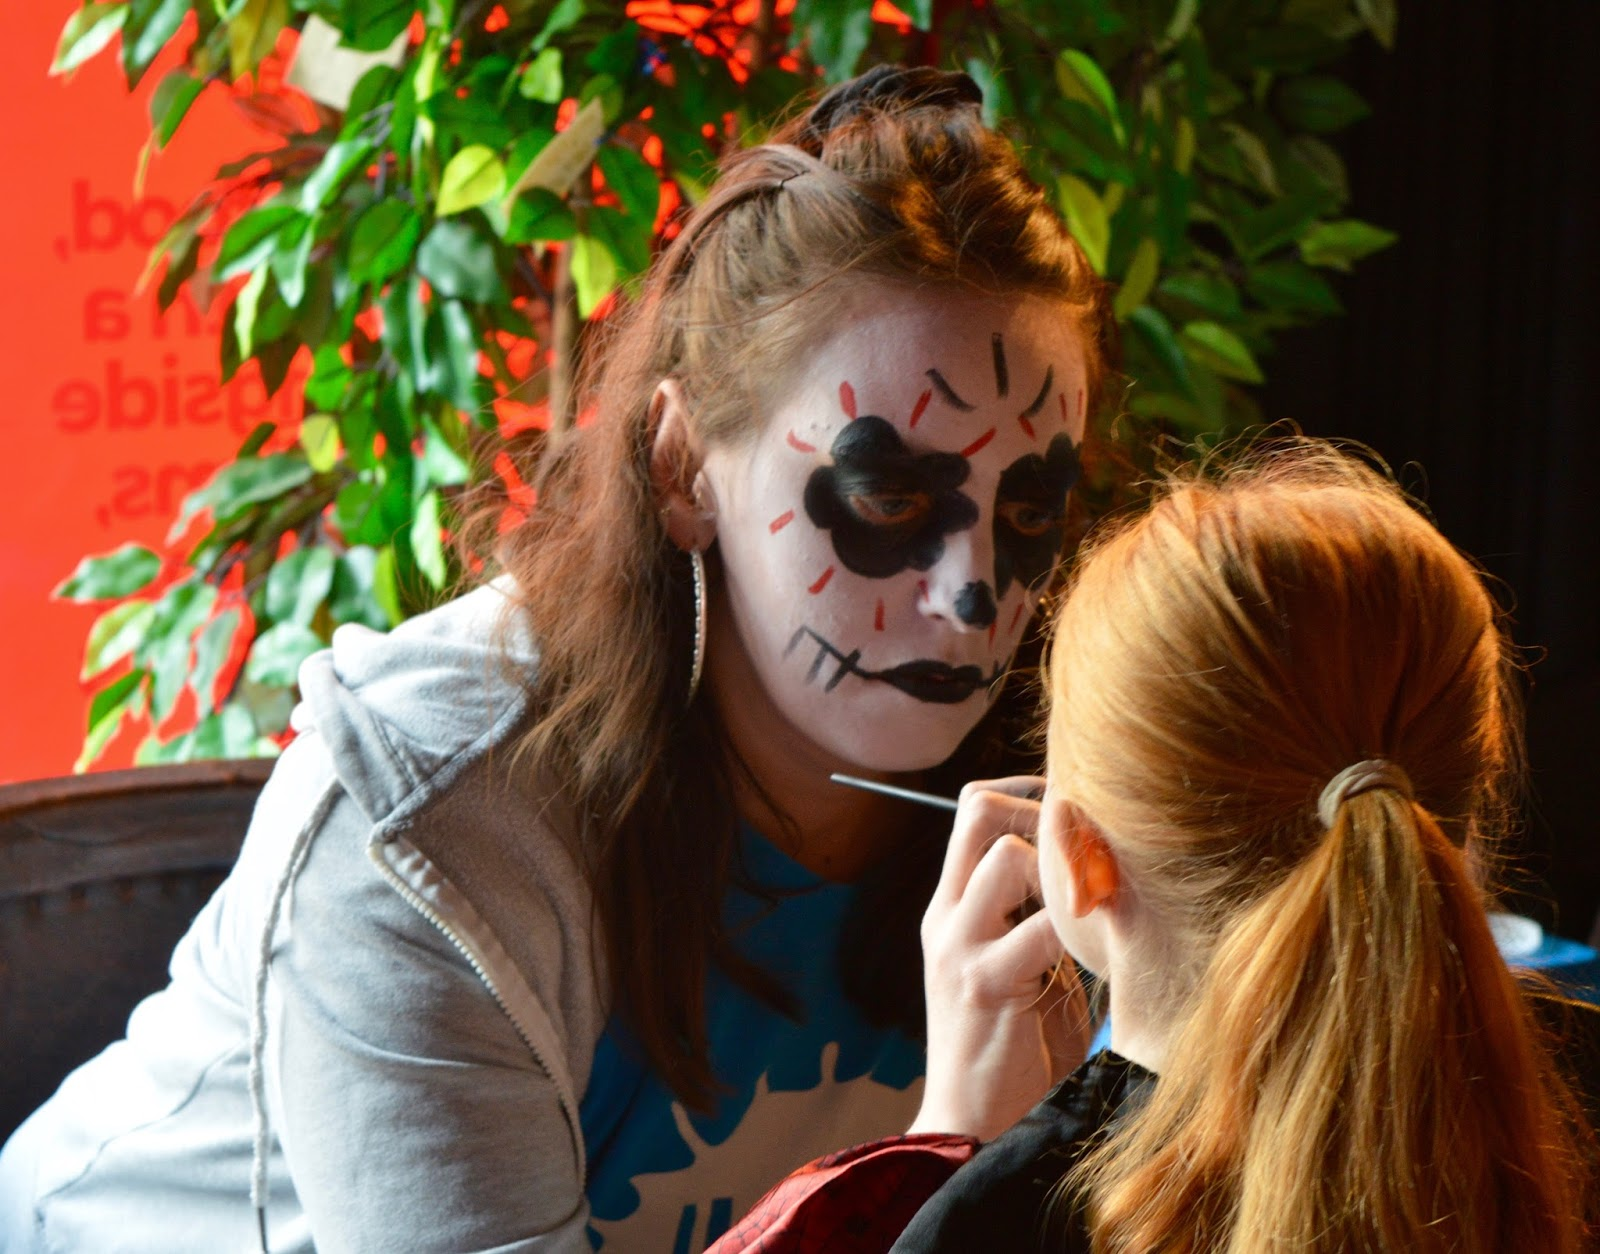 Juice Festival | Day of the Dead Family Celebrations at ¡Vamos! Social, Newcastle  - face painting